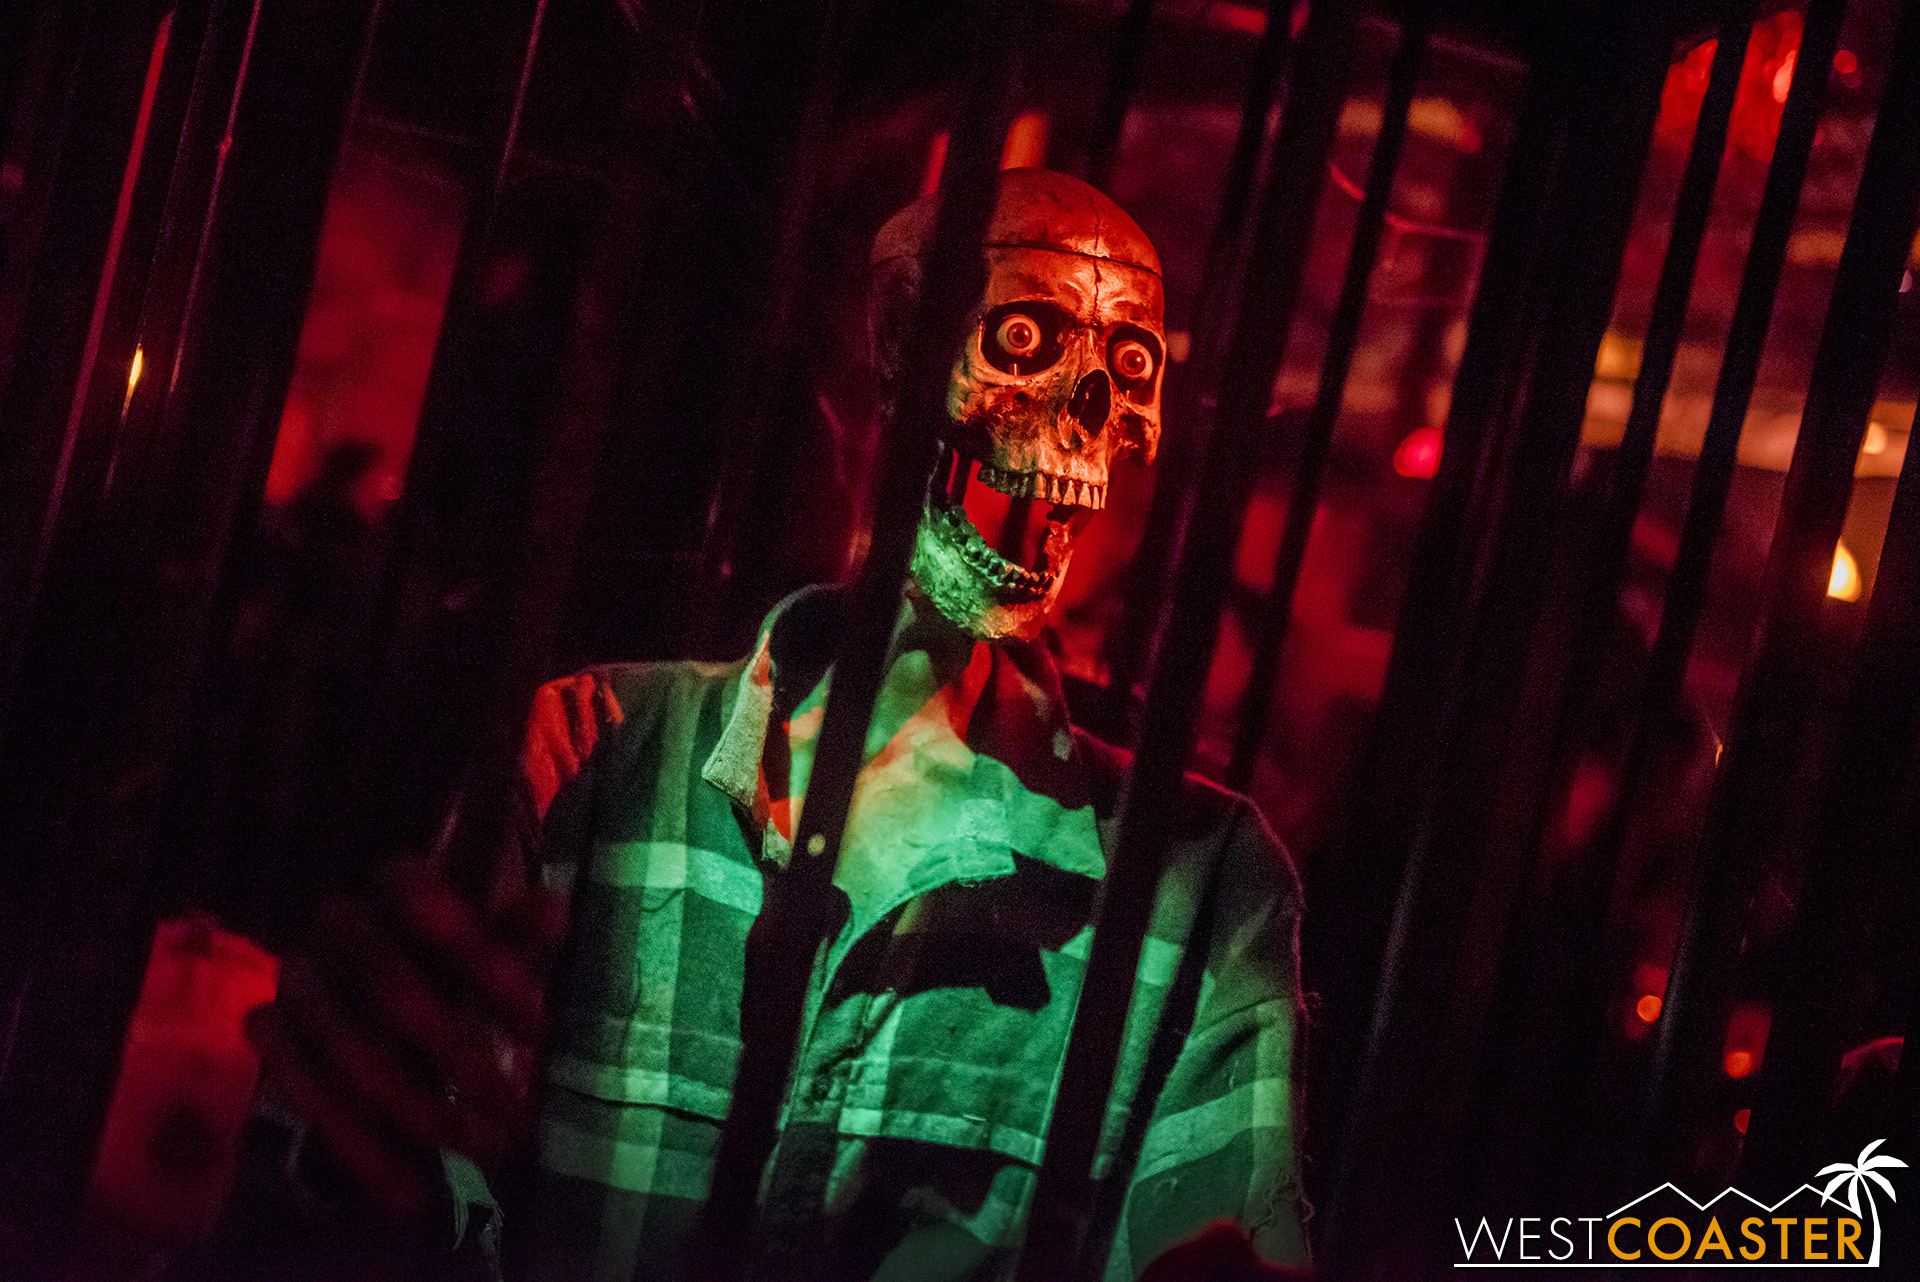 Animatronics, live actors, layered furnishings and set… Reign of Terror has it all.